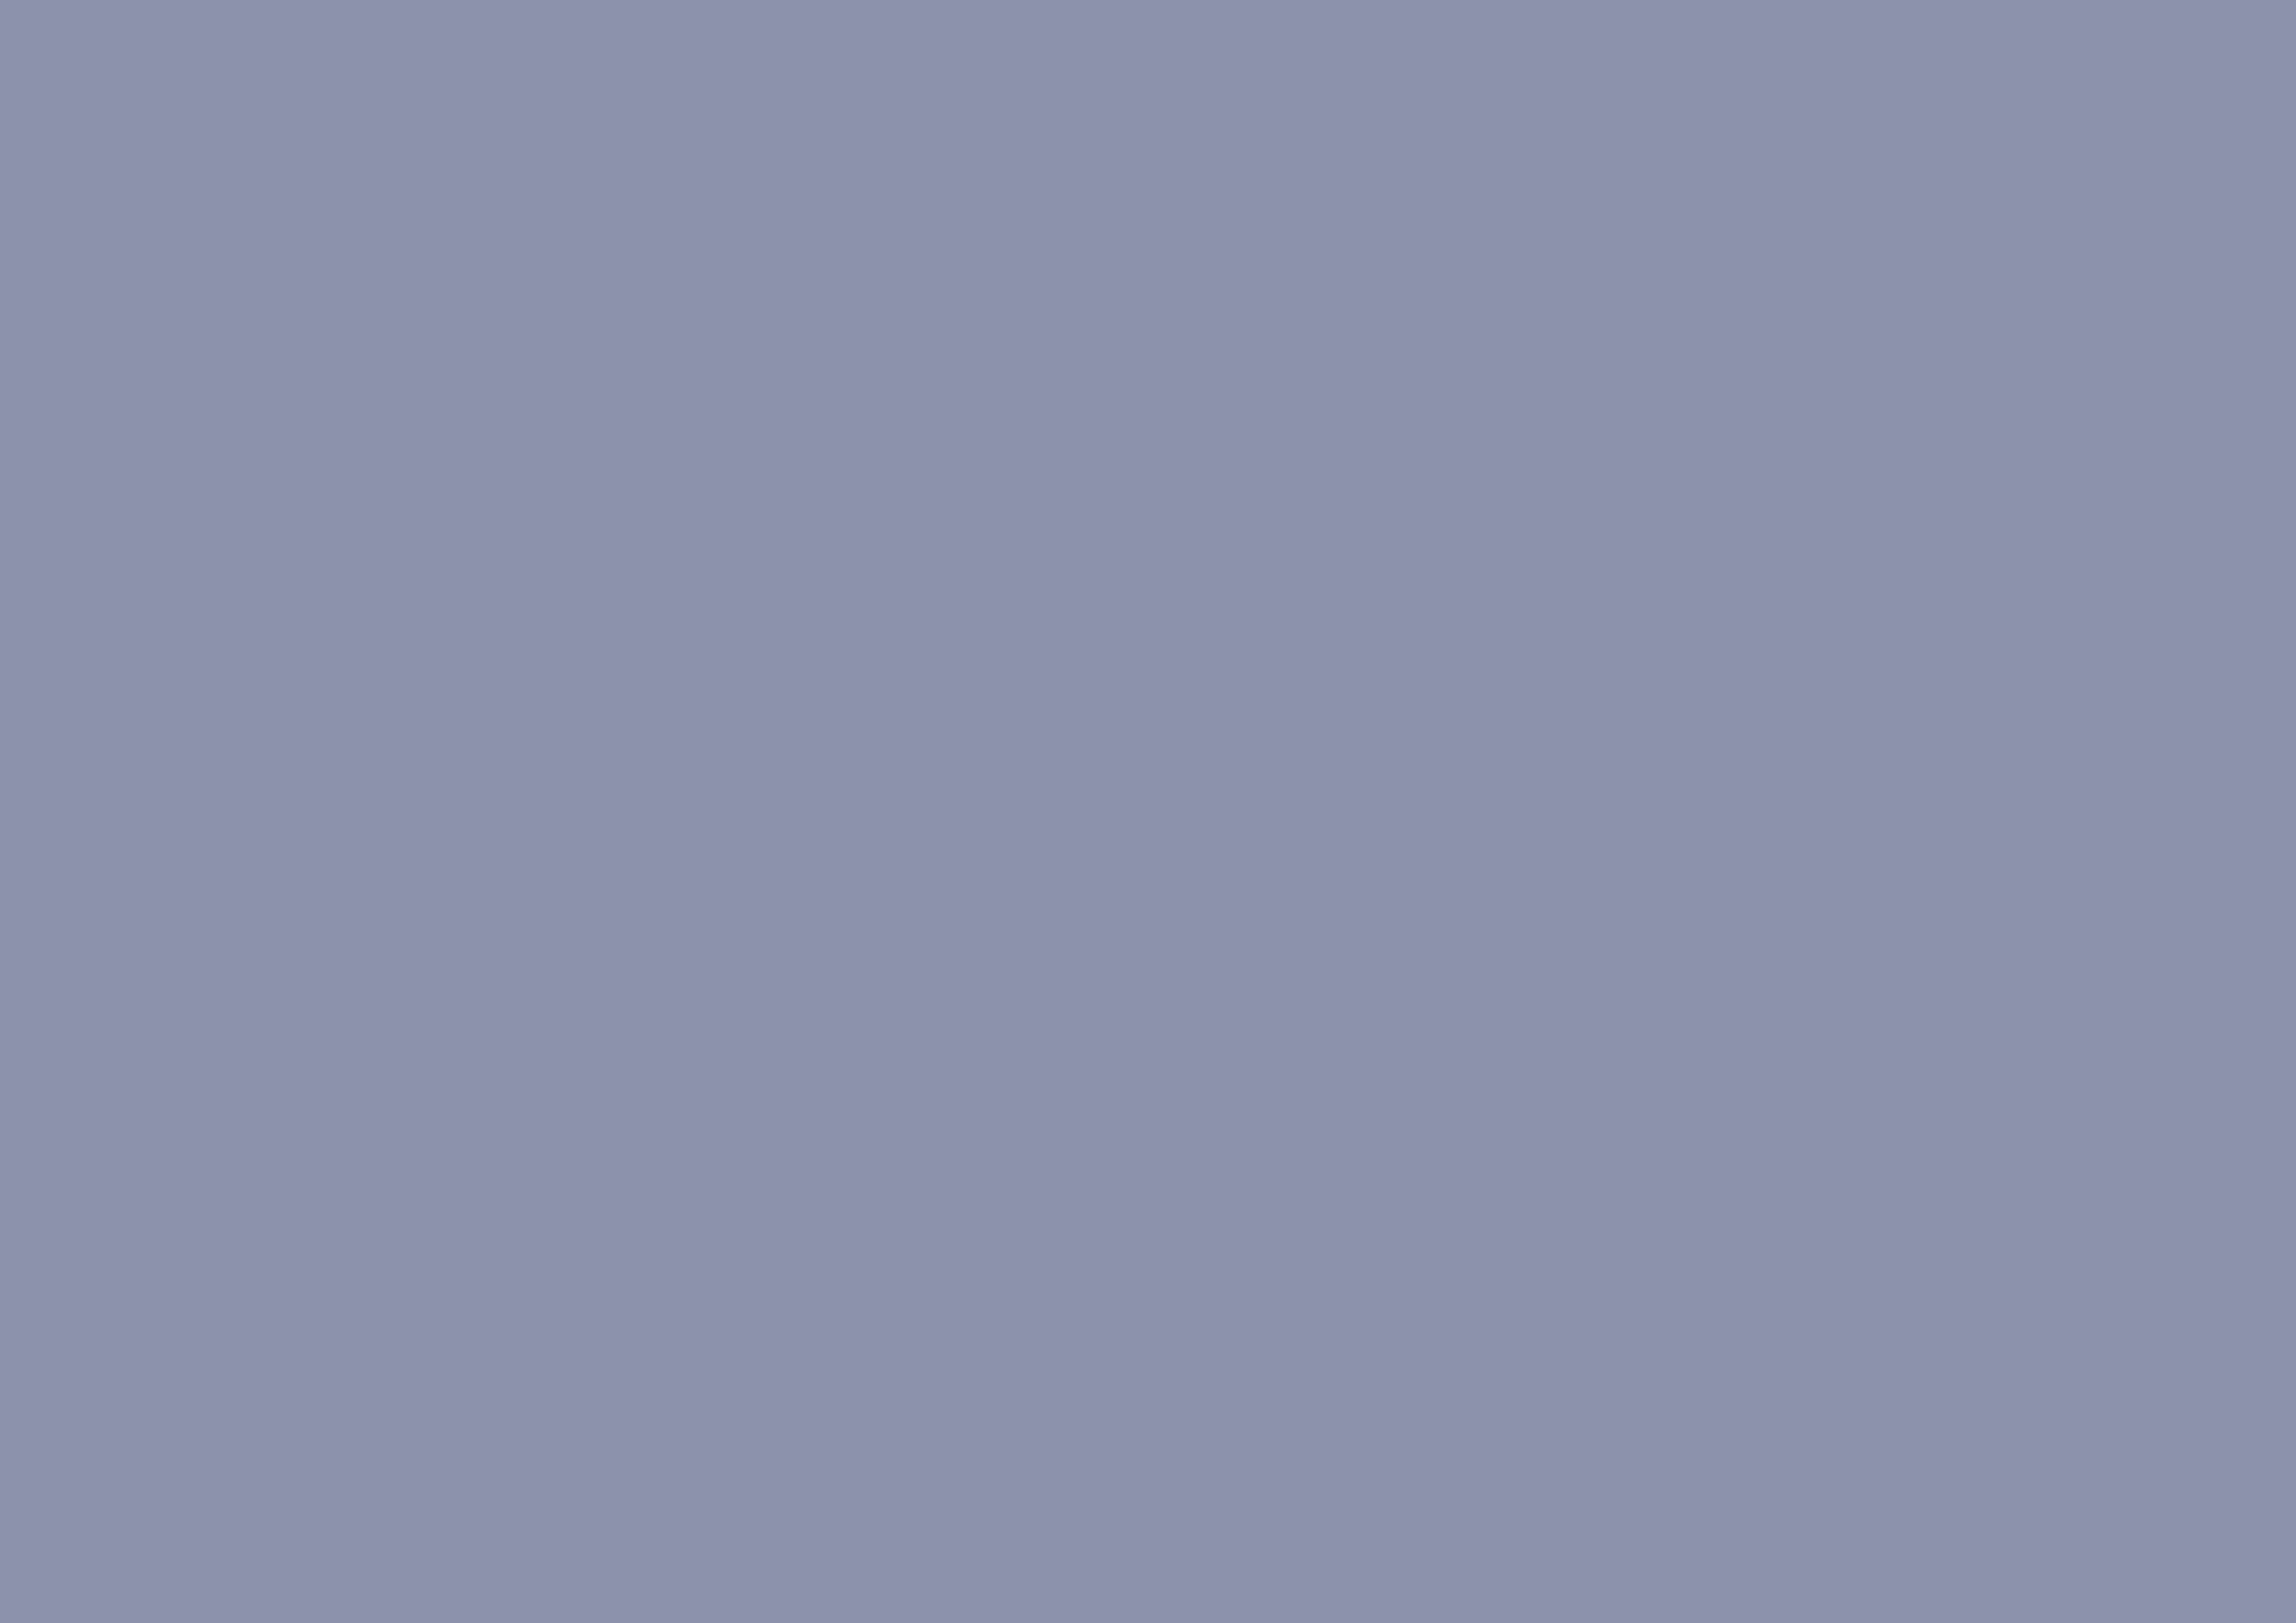 3508x2480 Cool Grey Solid Color Background